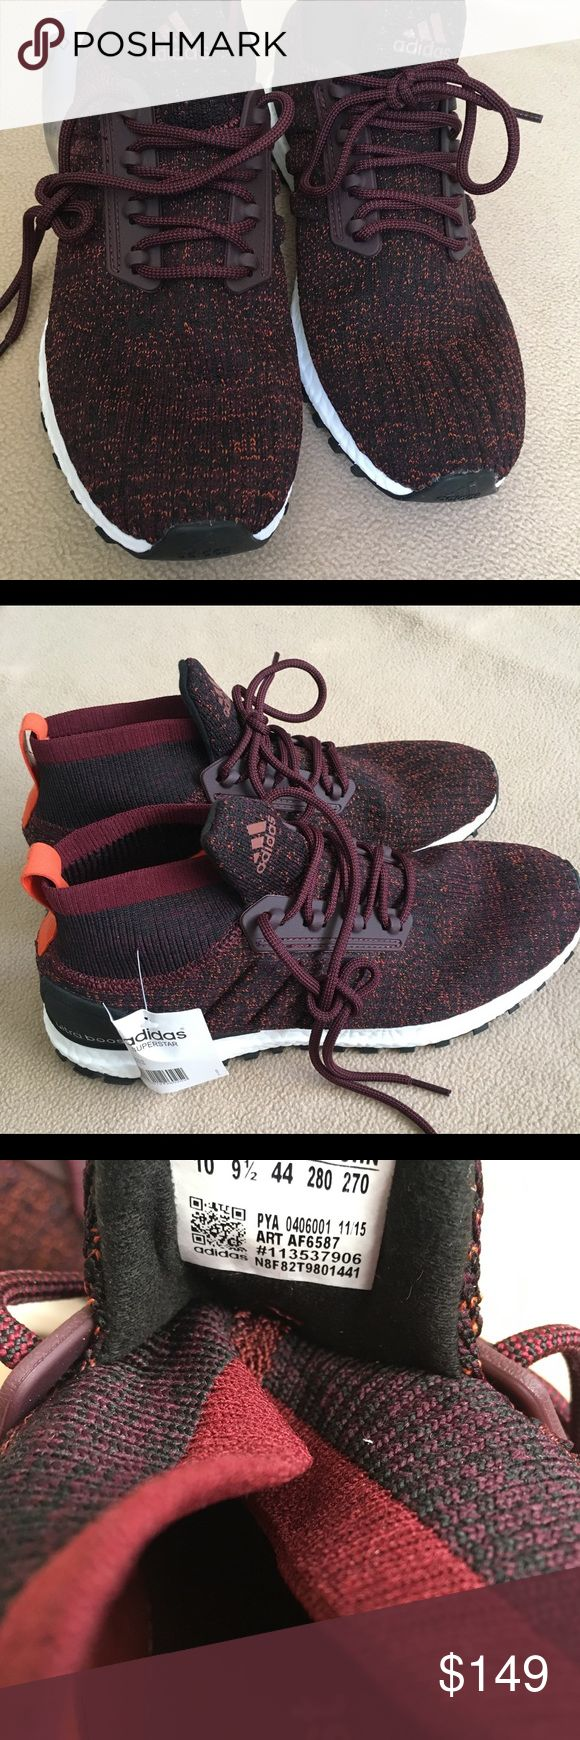 Adidas Ultra Boost Shoes Brand new adidas ultra boost shoes for men and women!  Men us 10 size  Women us 12 size adidas Shoes Athletic Shoes